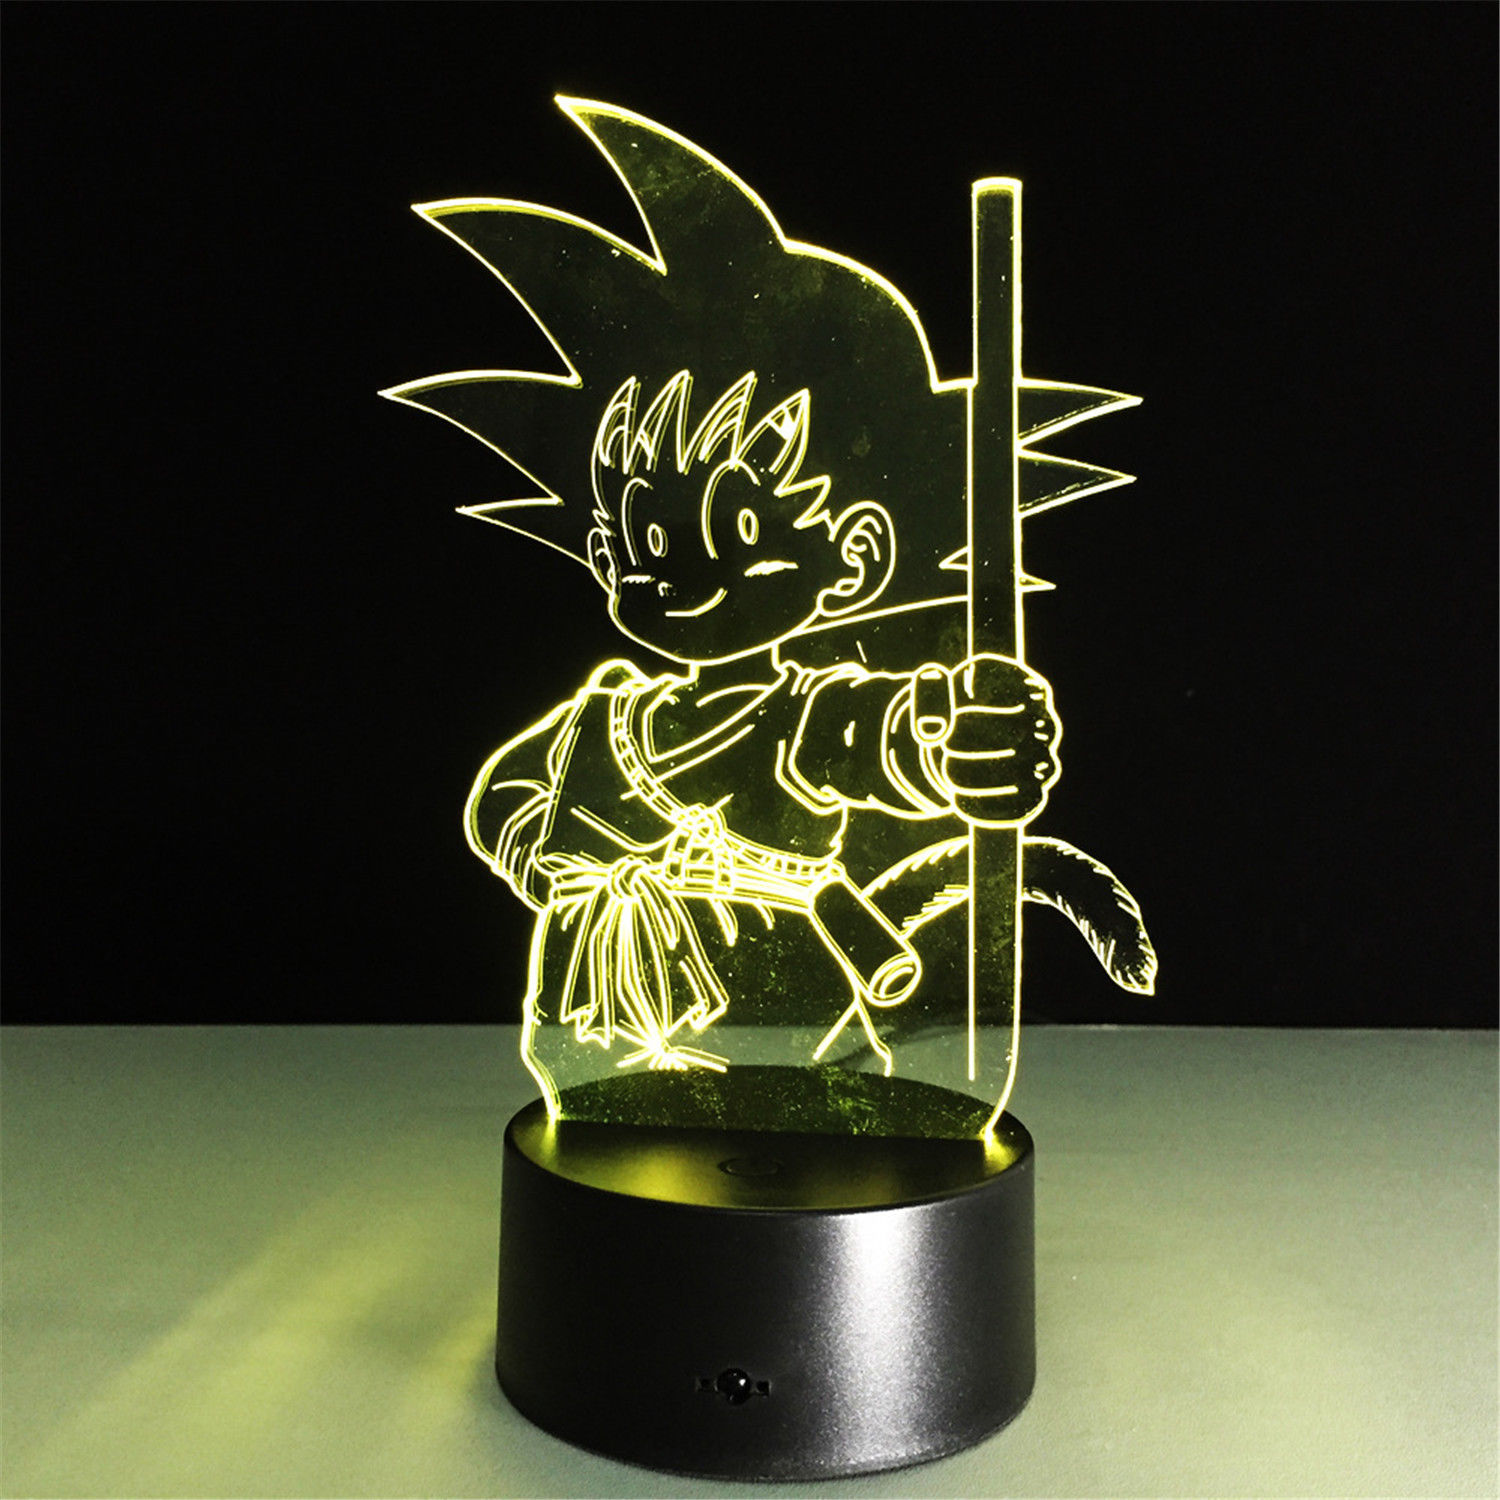 Night Atmosphere Print Dragon Ball 3D Illusion Night Light Color Change Touch Switch Table Desk Lamp